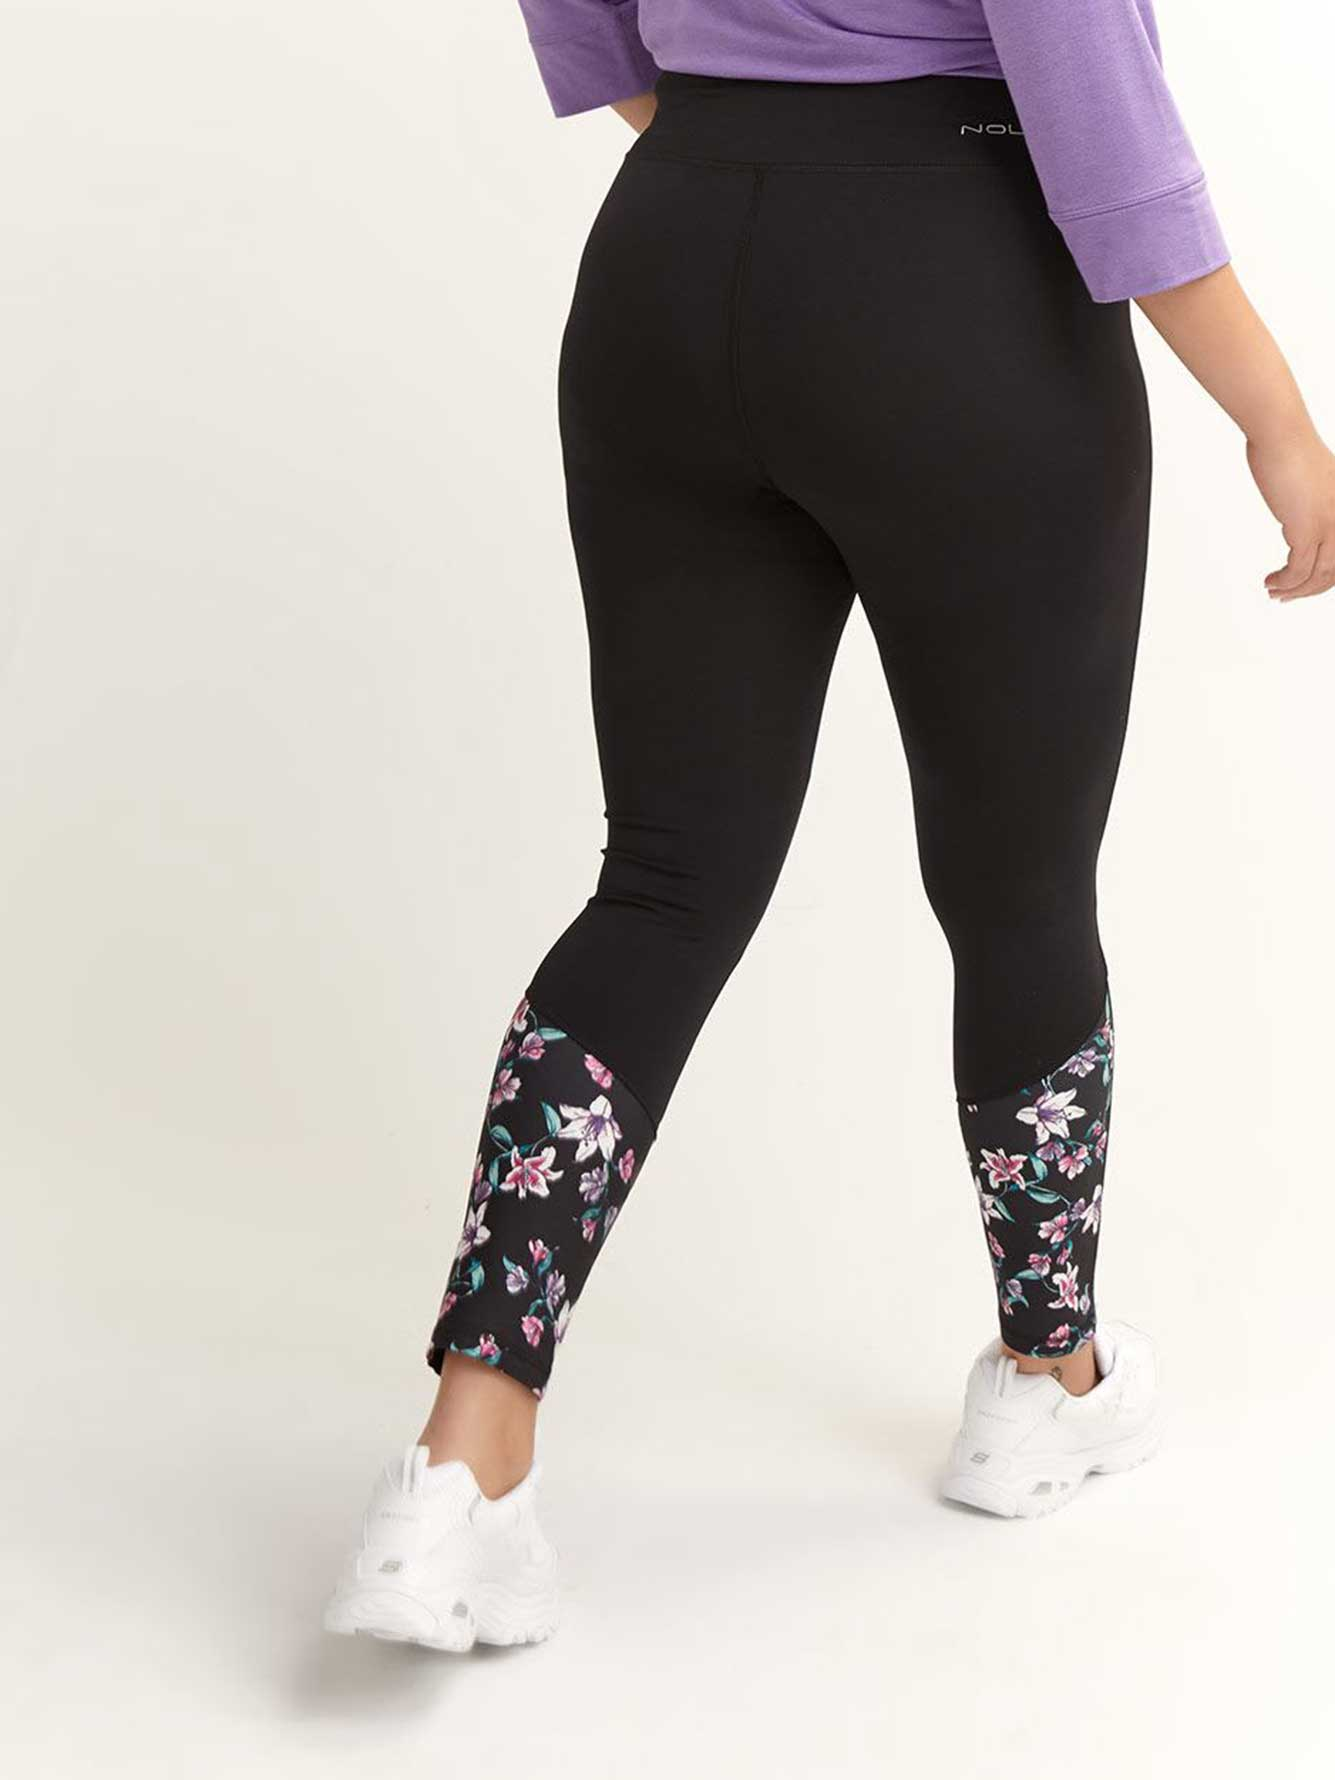 Legging with Floral Print - Nola